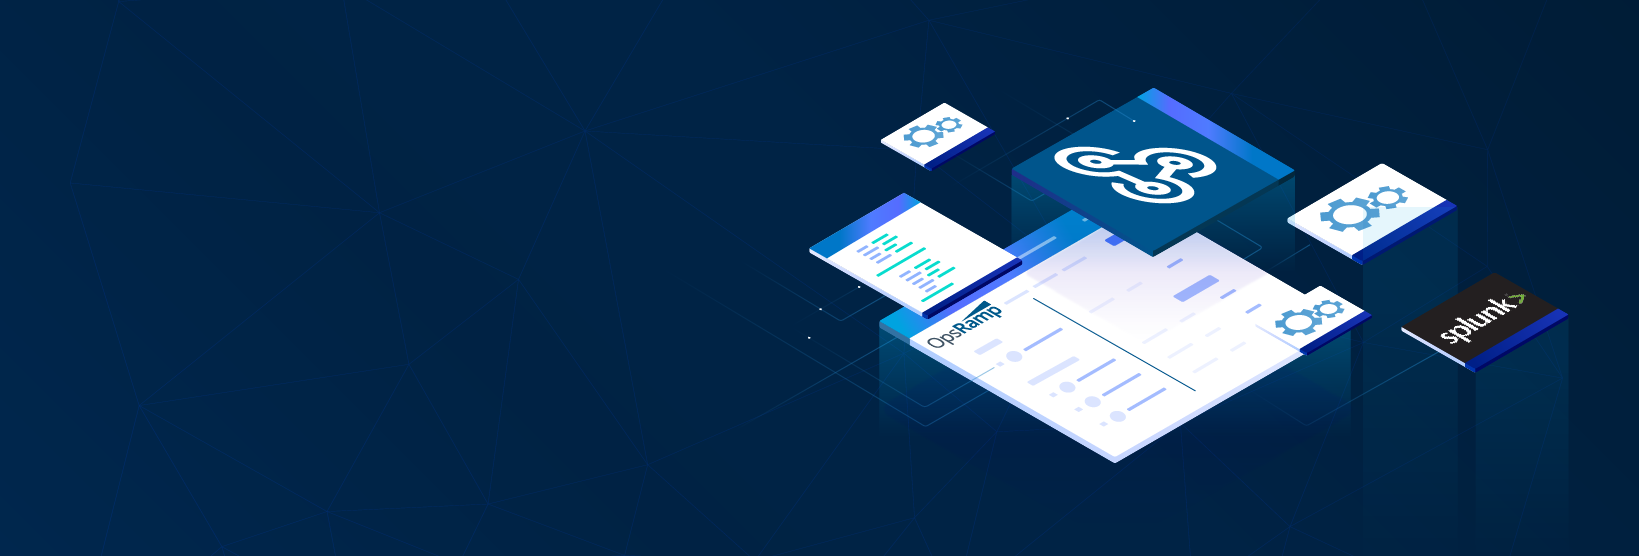 How to Build Custom Integrations That Help Connect OpsRamp with Other IT Operations Tools